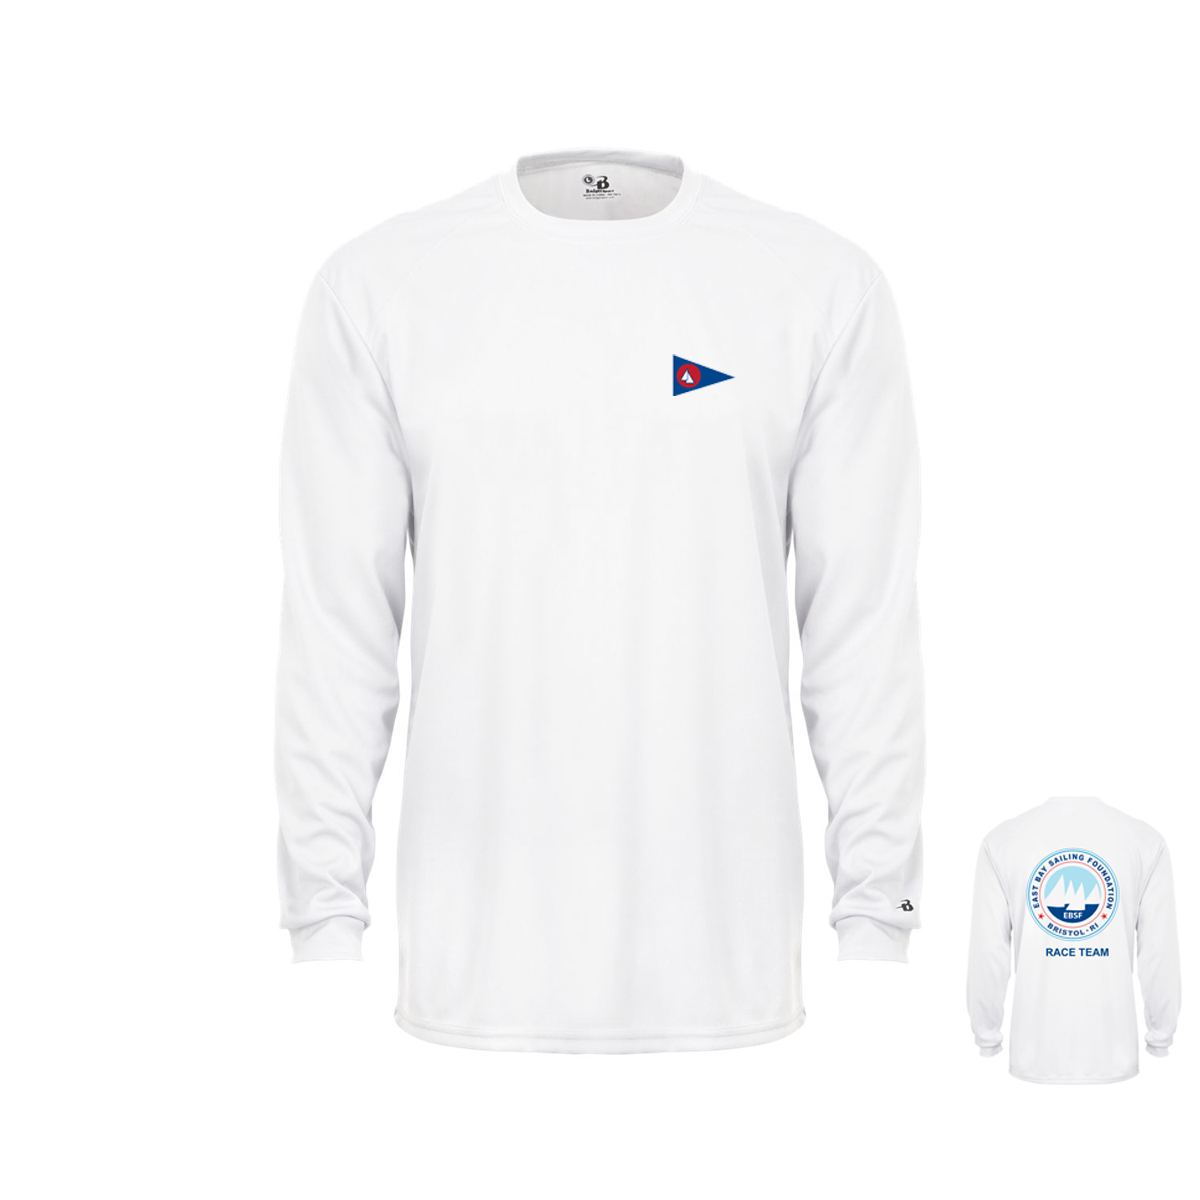 East Bay Sailing Foundation - Youth Race Team Long Sleeve Tech Tee